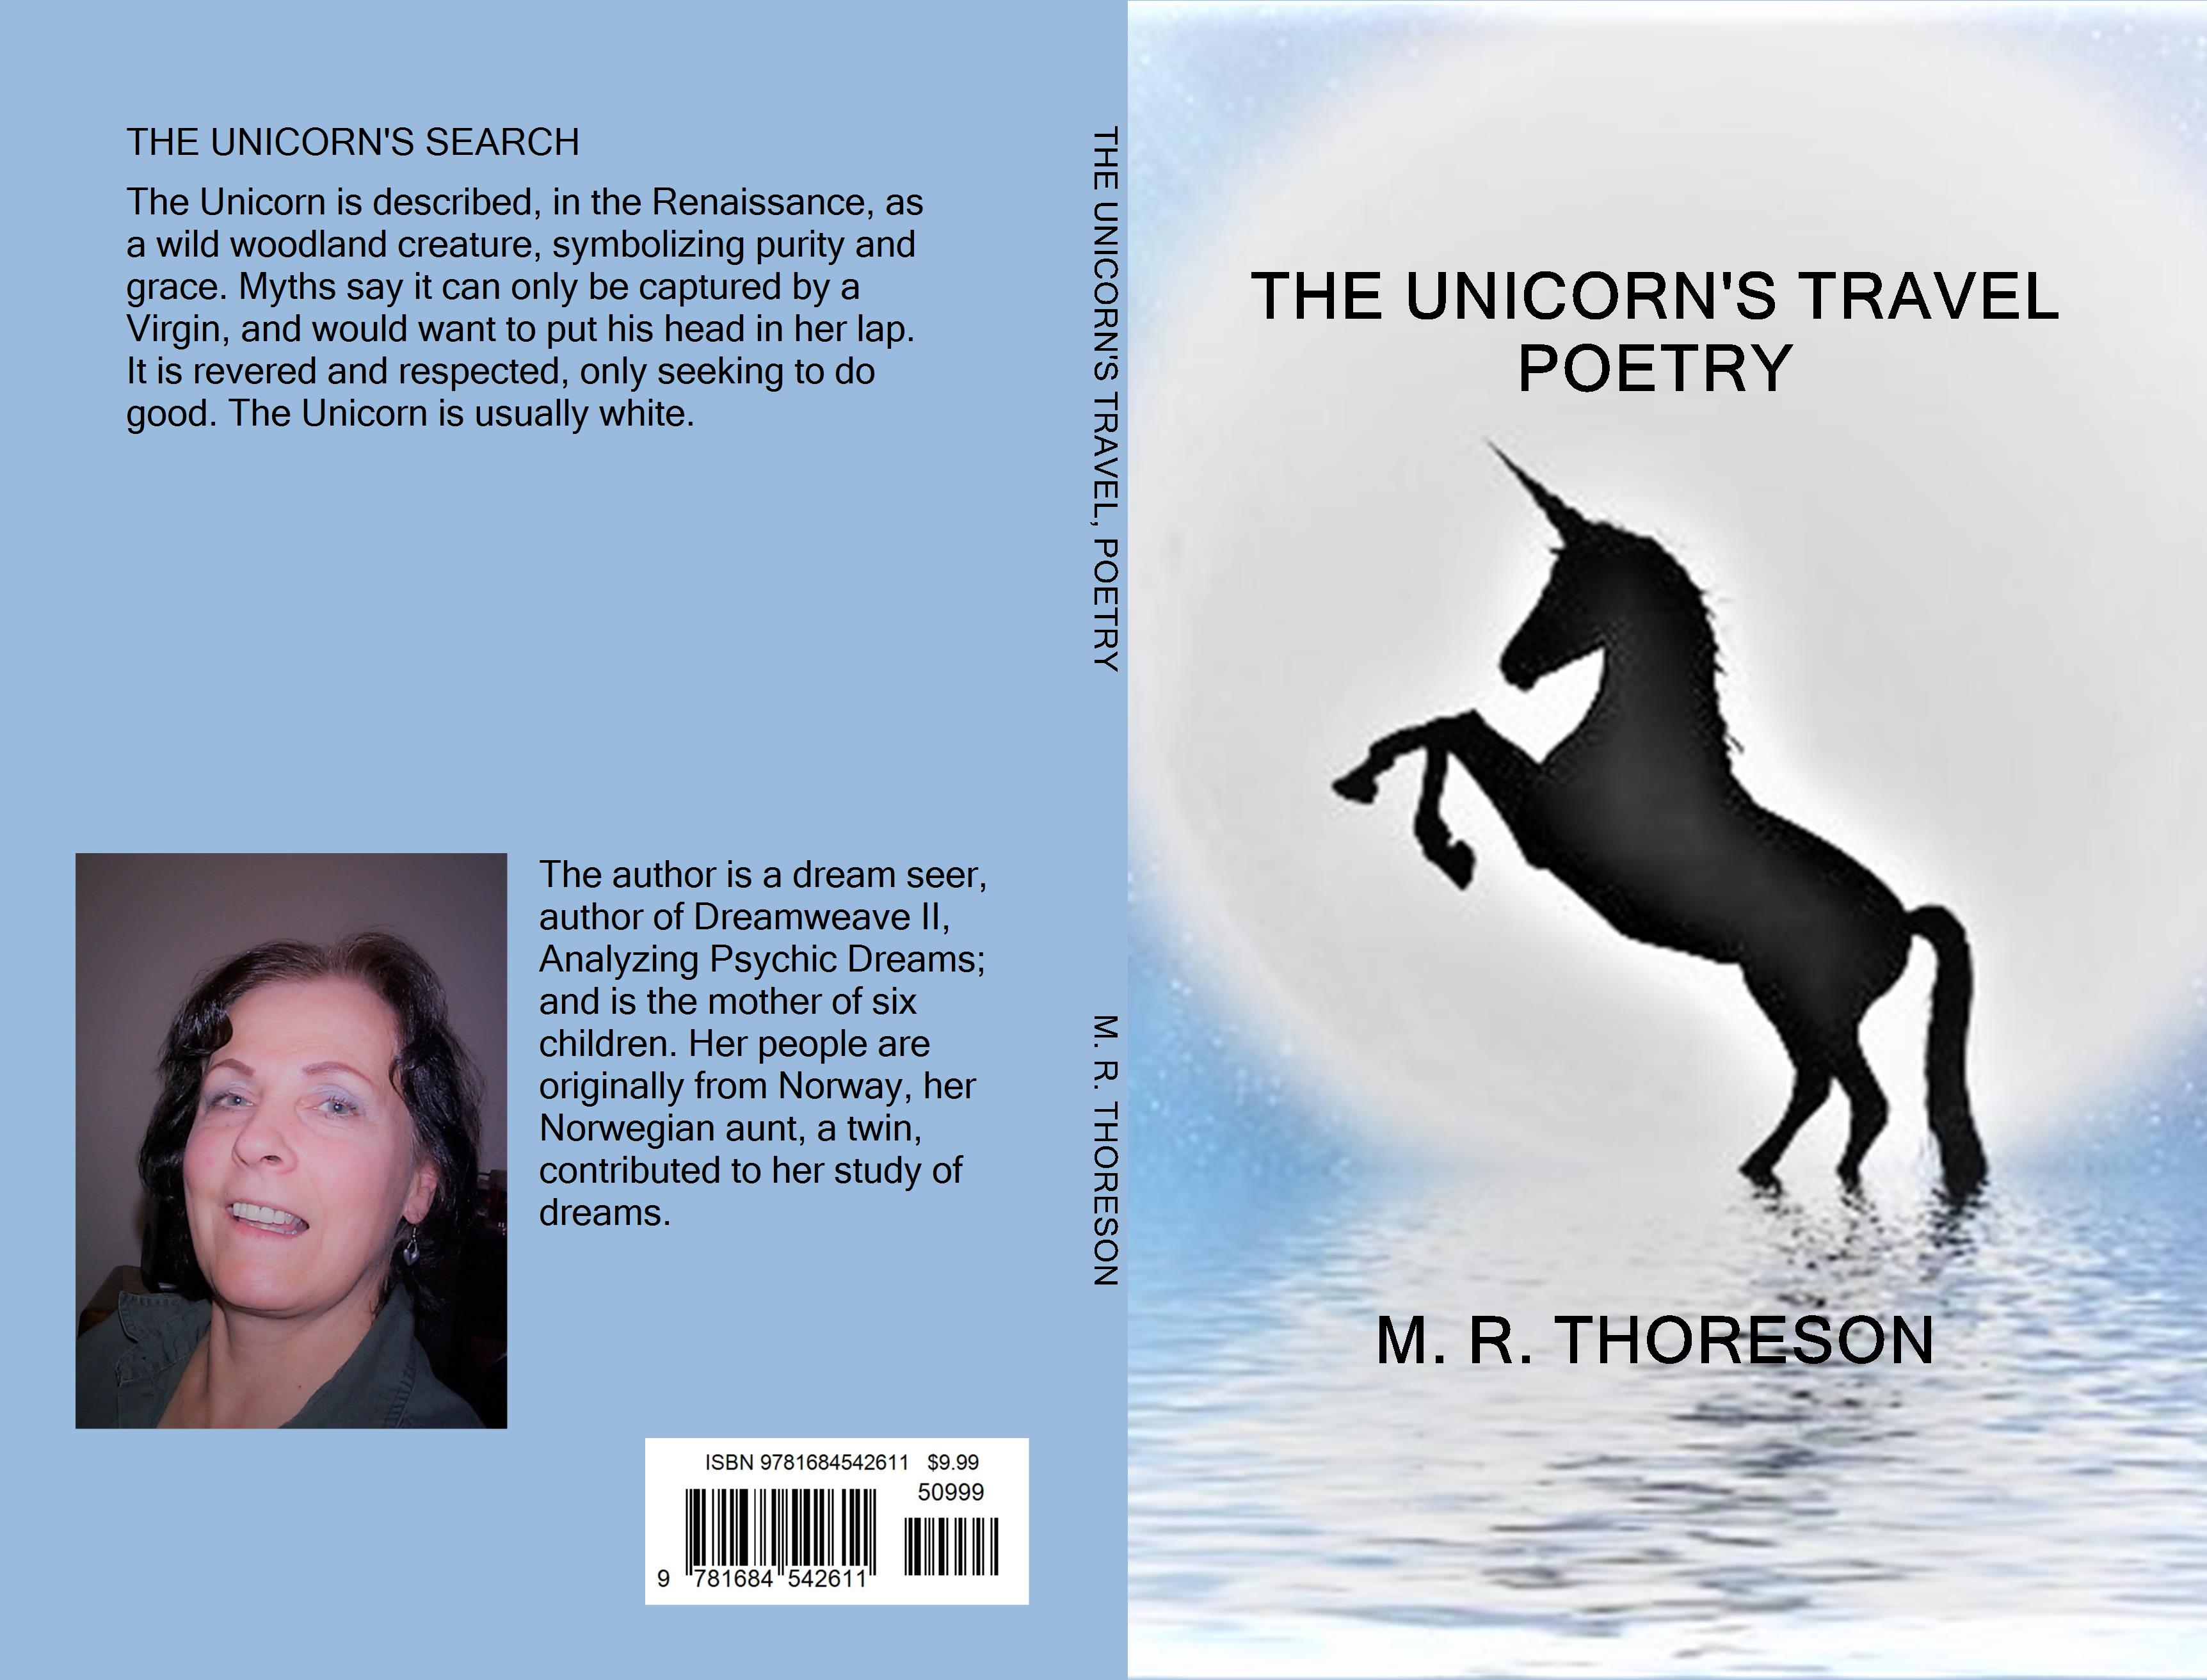 The Unicorn S Travel Poetry By M R Thoreson 11 99 9781684542611 Thebookpatch Com